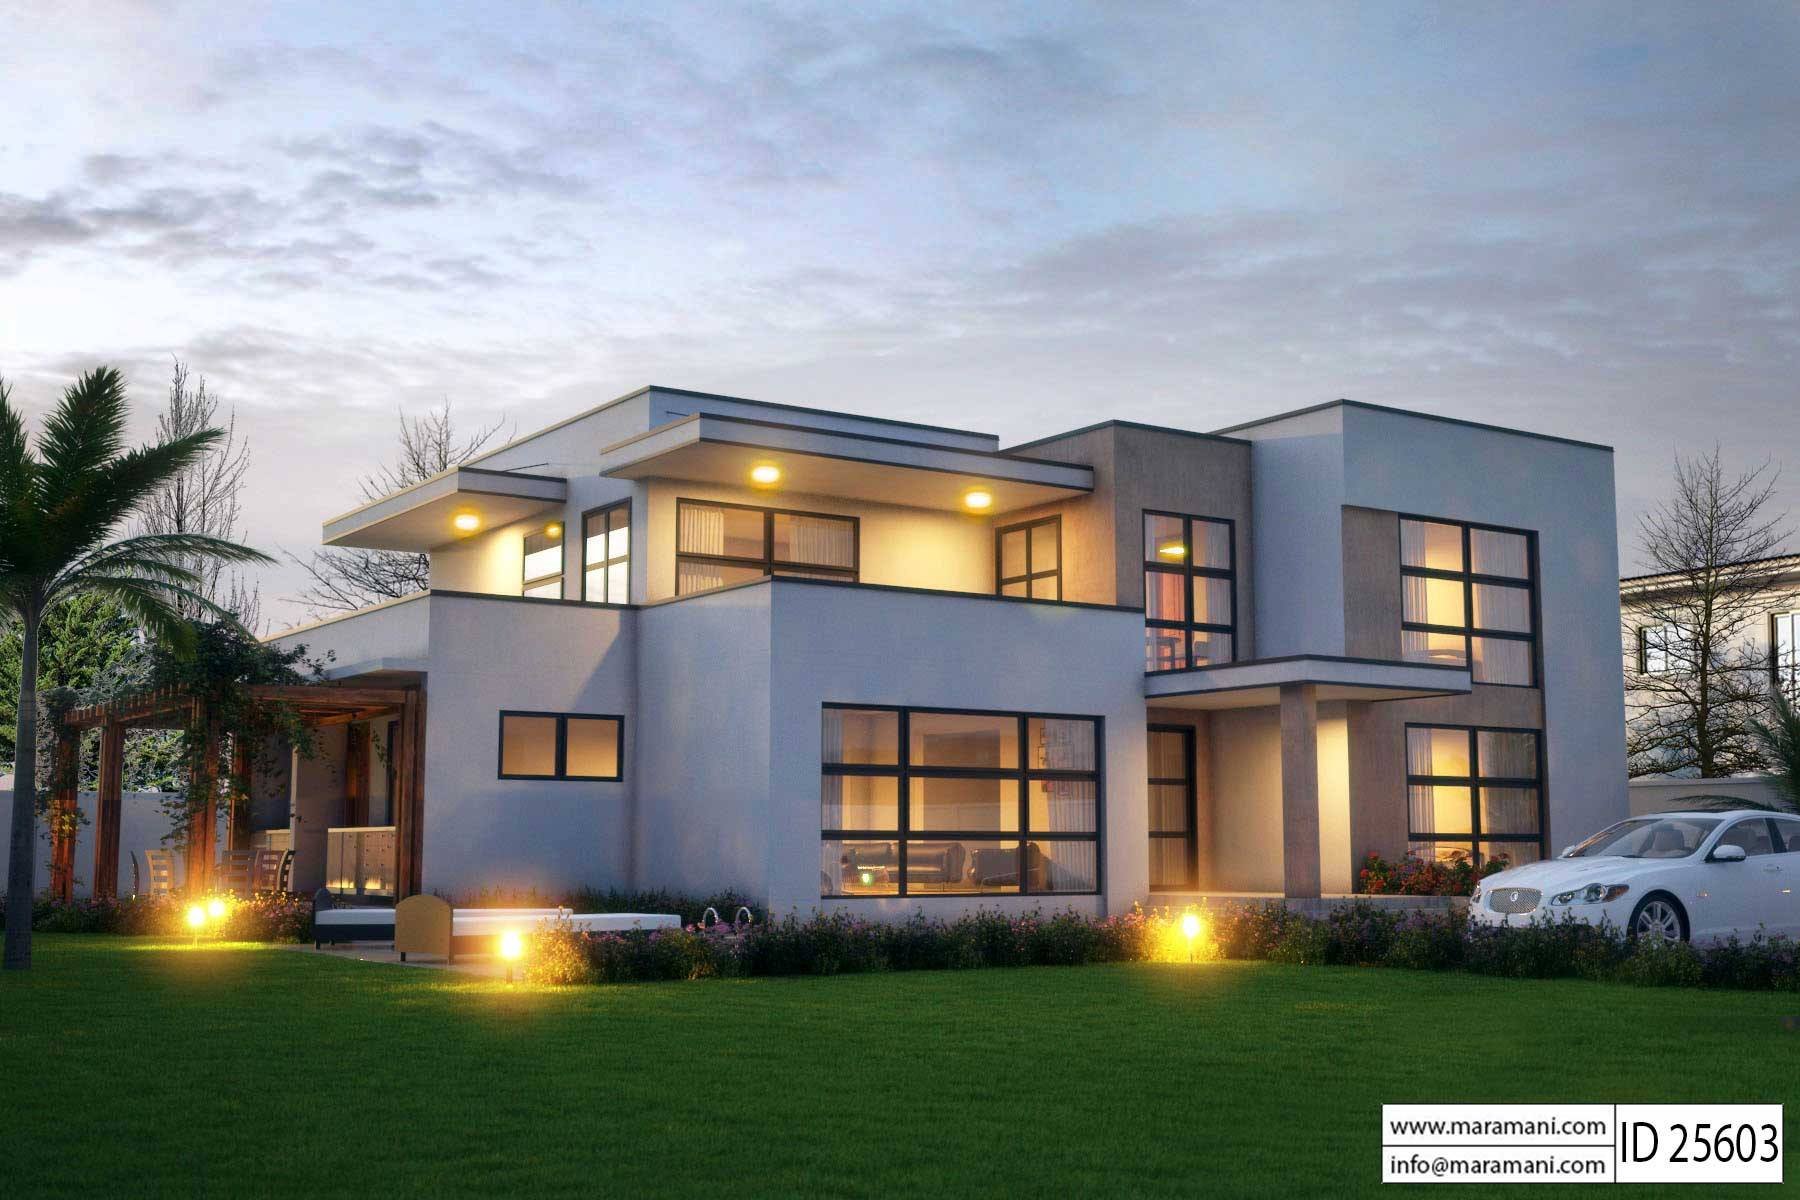 Modern 5 bedroom house design id 25603 floor plans by for Five bedroom house